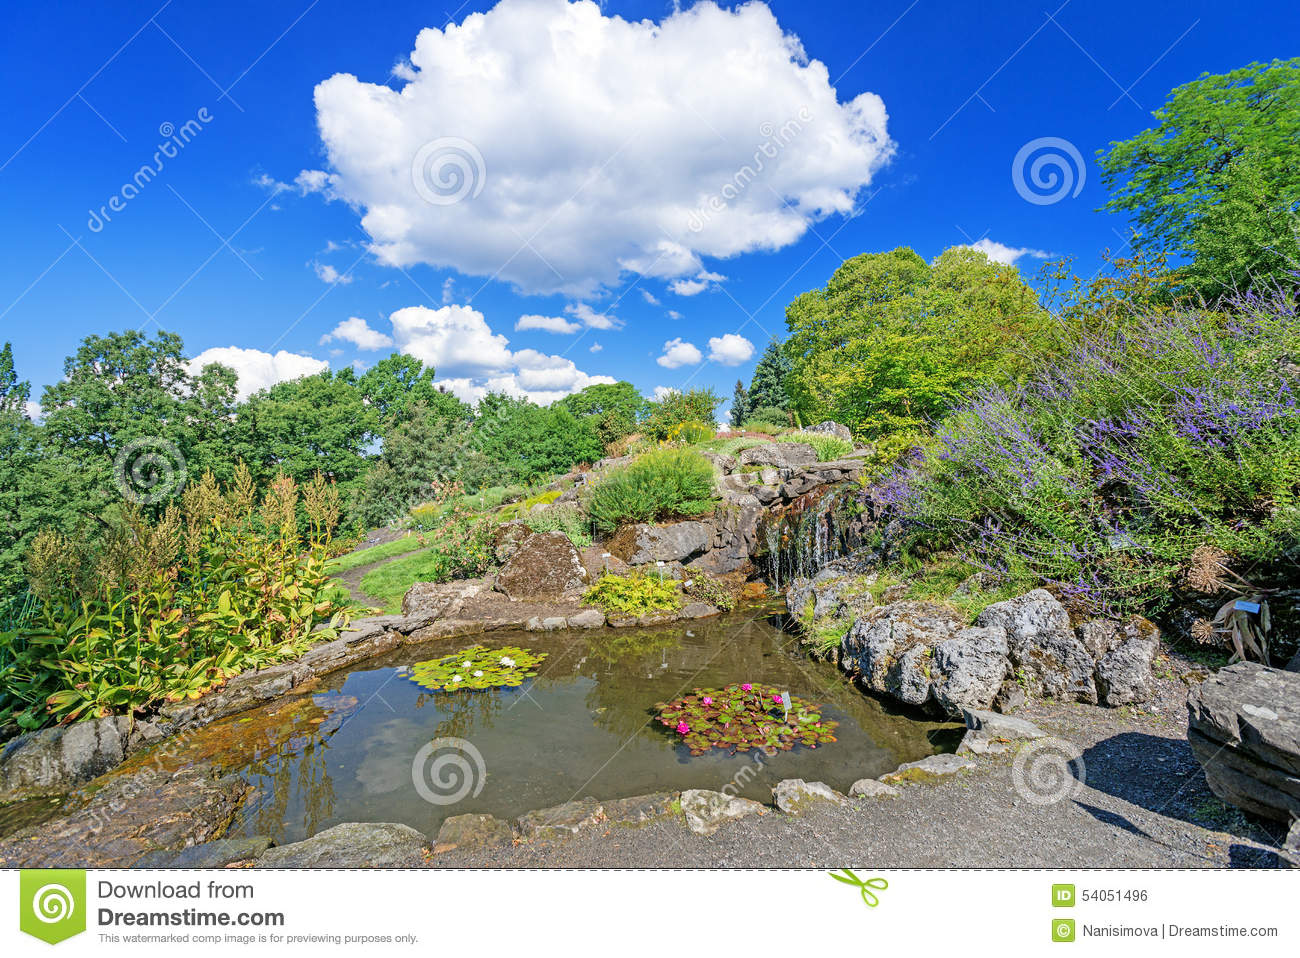 Decorative pond with waterfall and flowers at Oslo city park